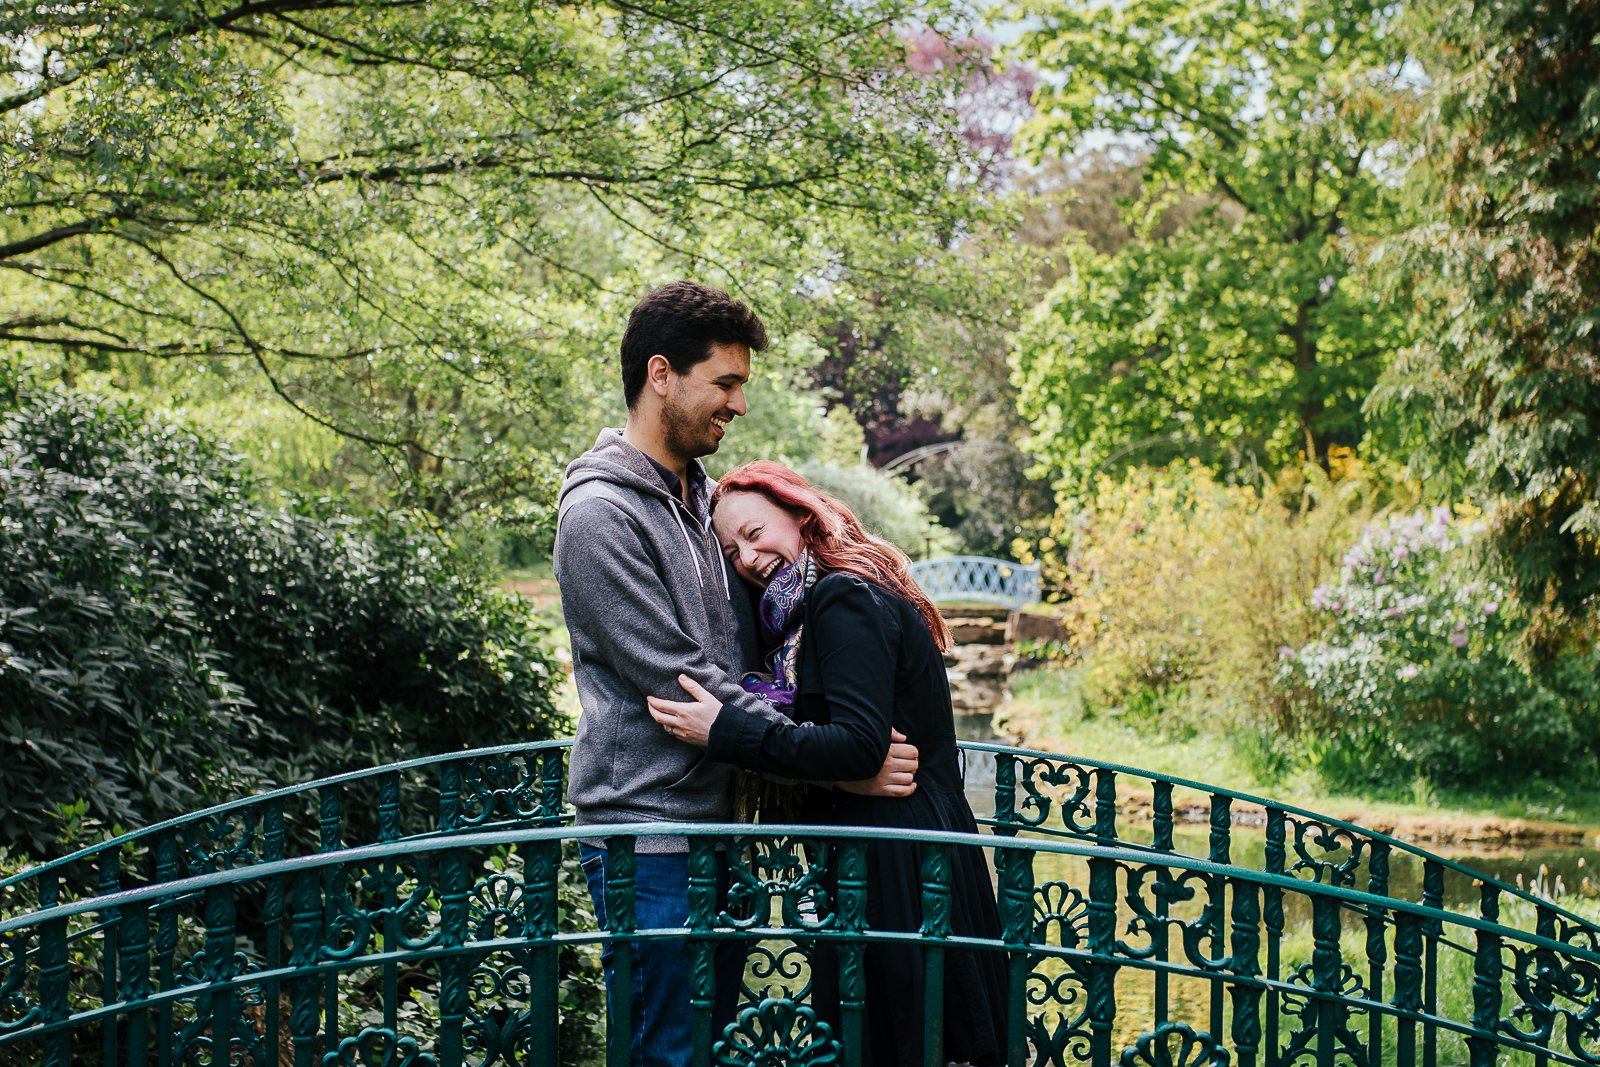 Happy couple hugging and laughing on a bridge in beautiful garden setting